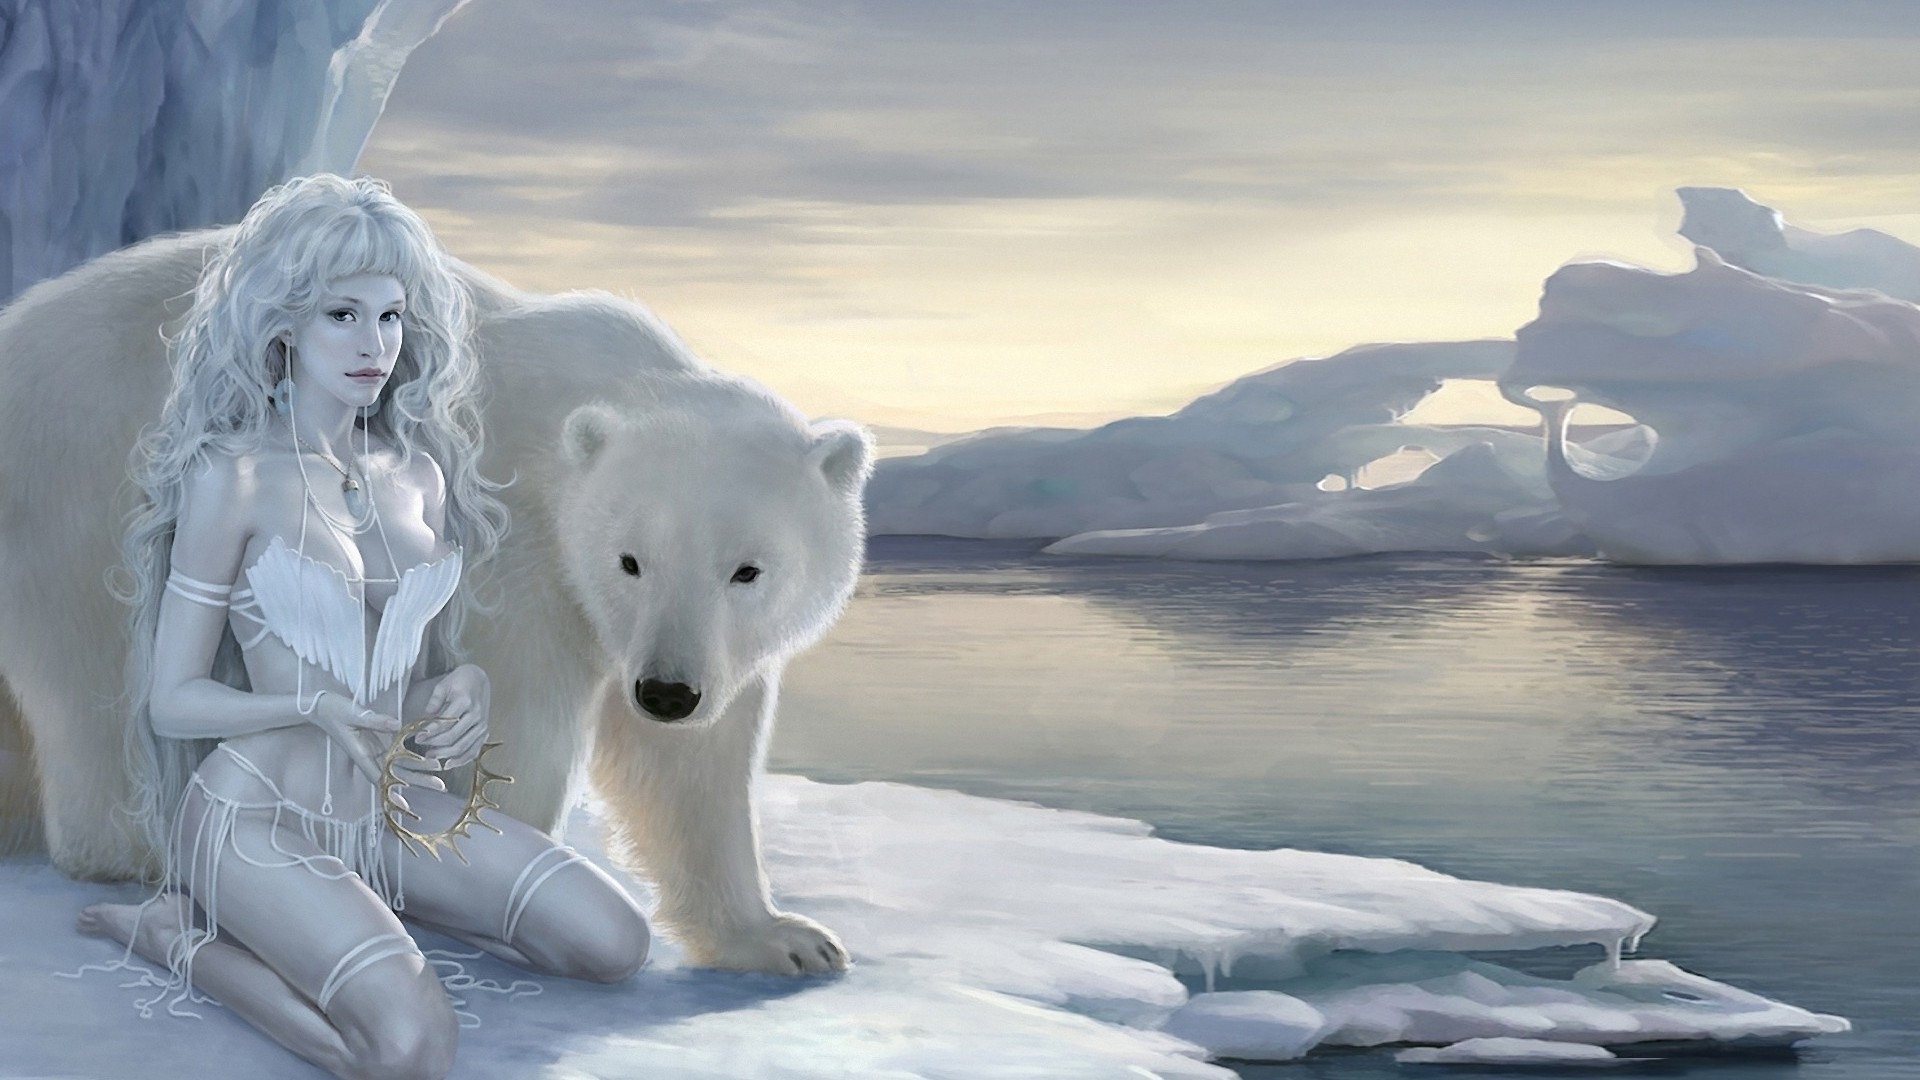 The girl and the polar bear. Android wallpapers for free.